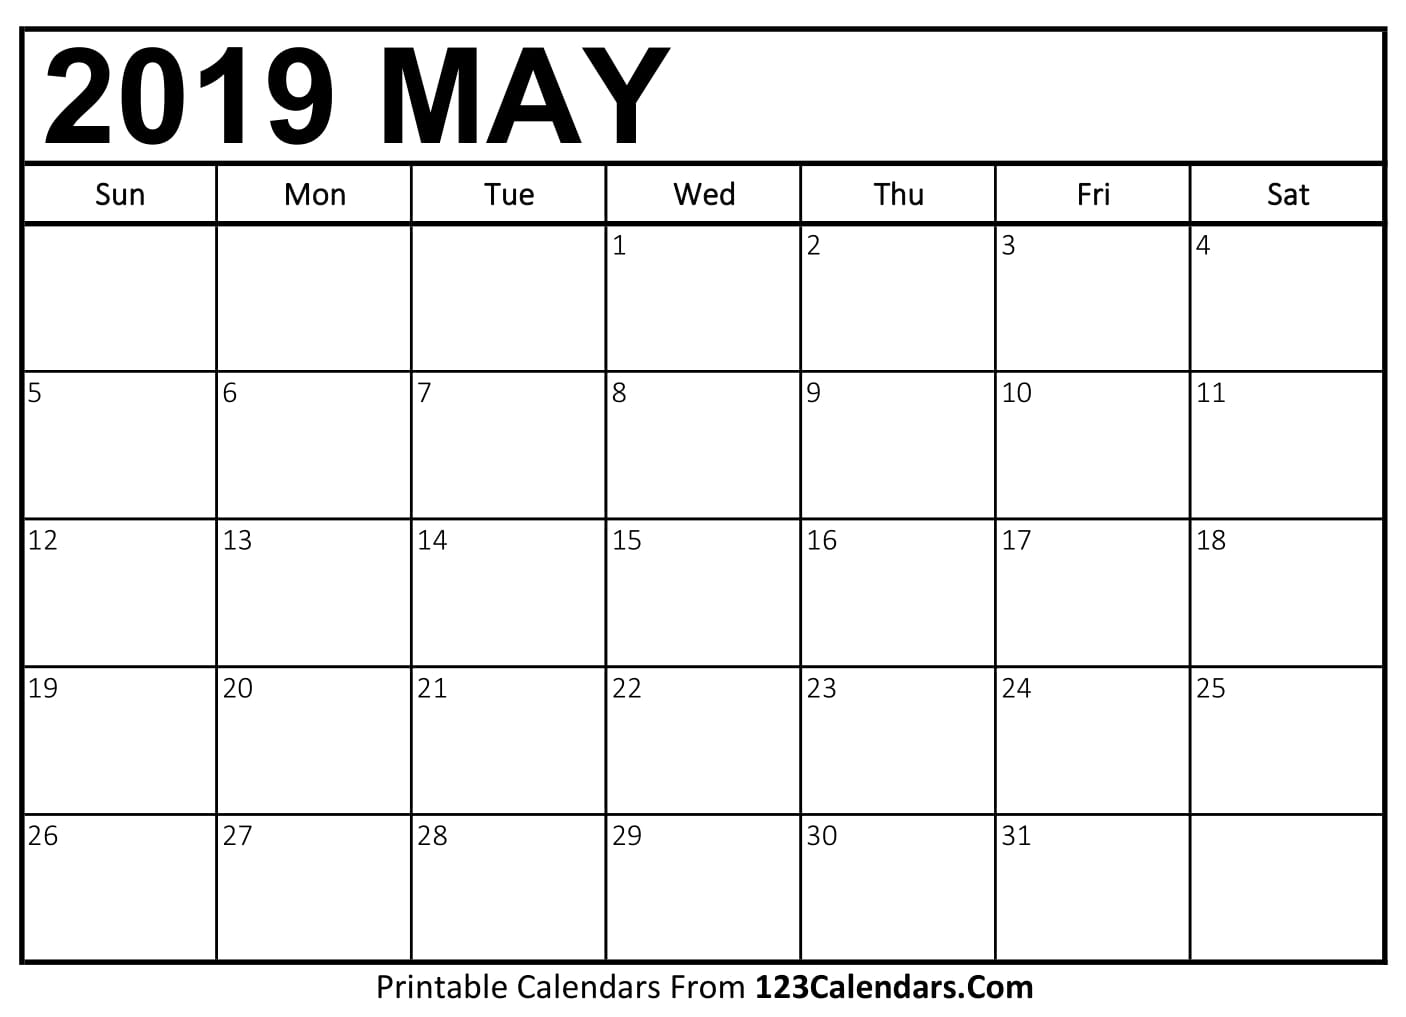 Calendar May To December : Printable may calendar templates calendars